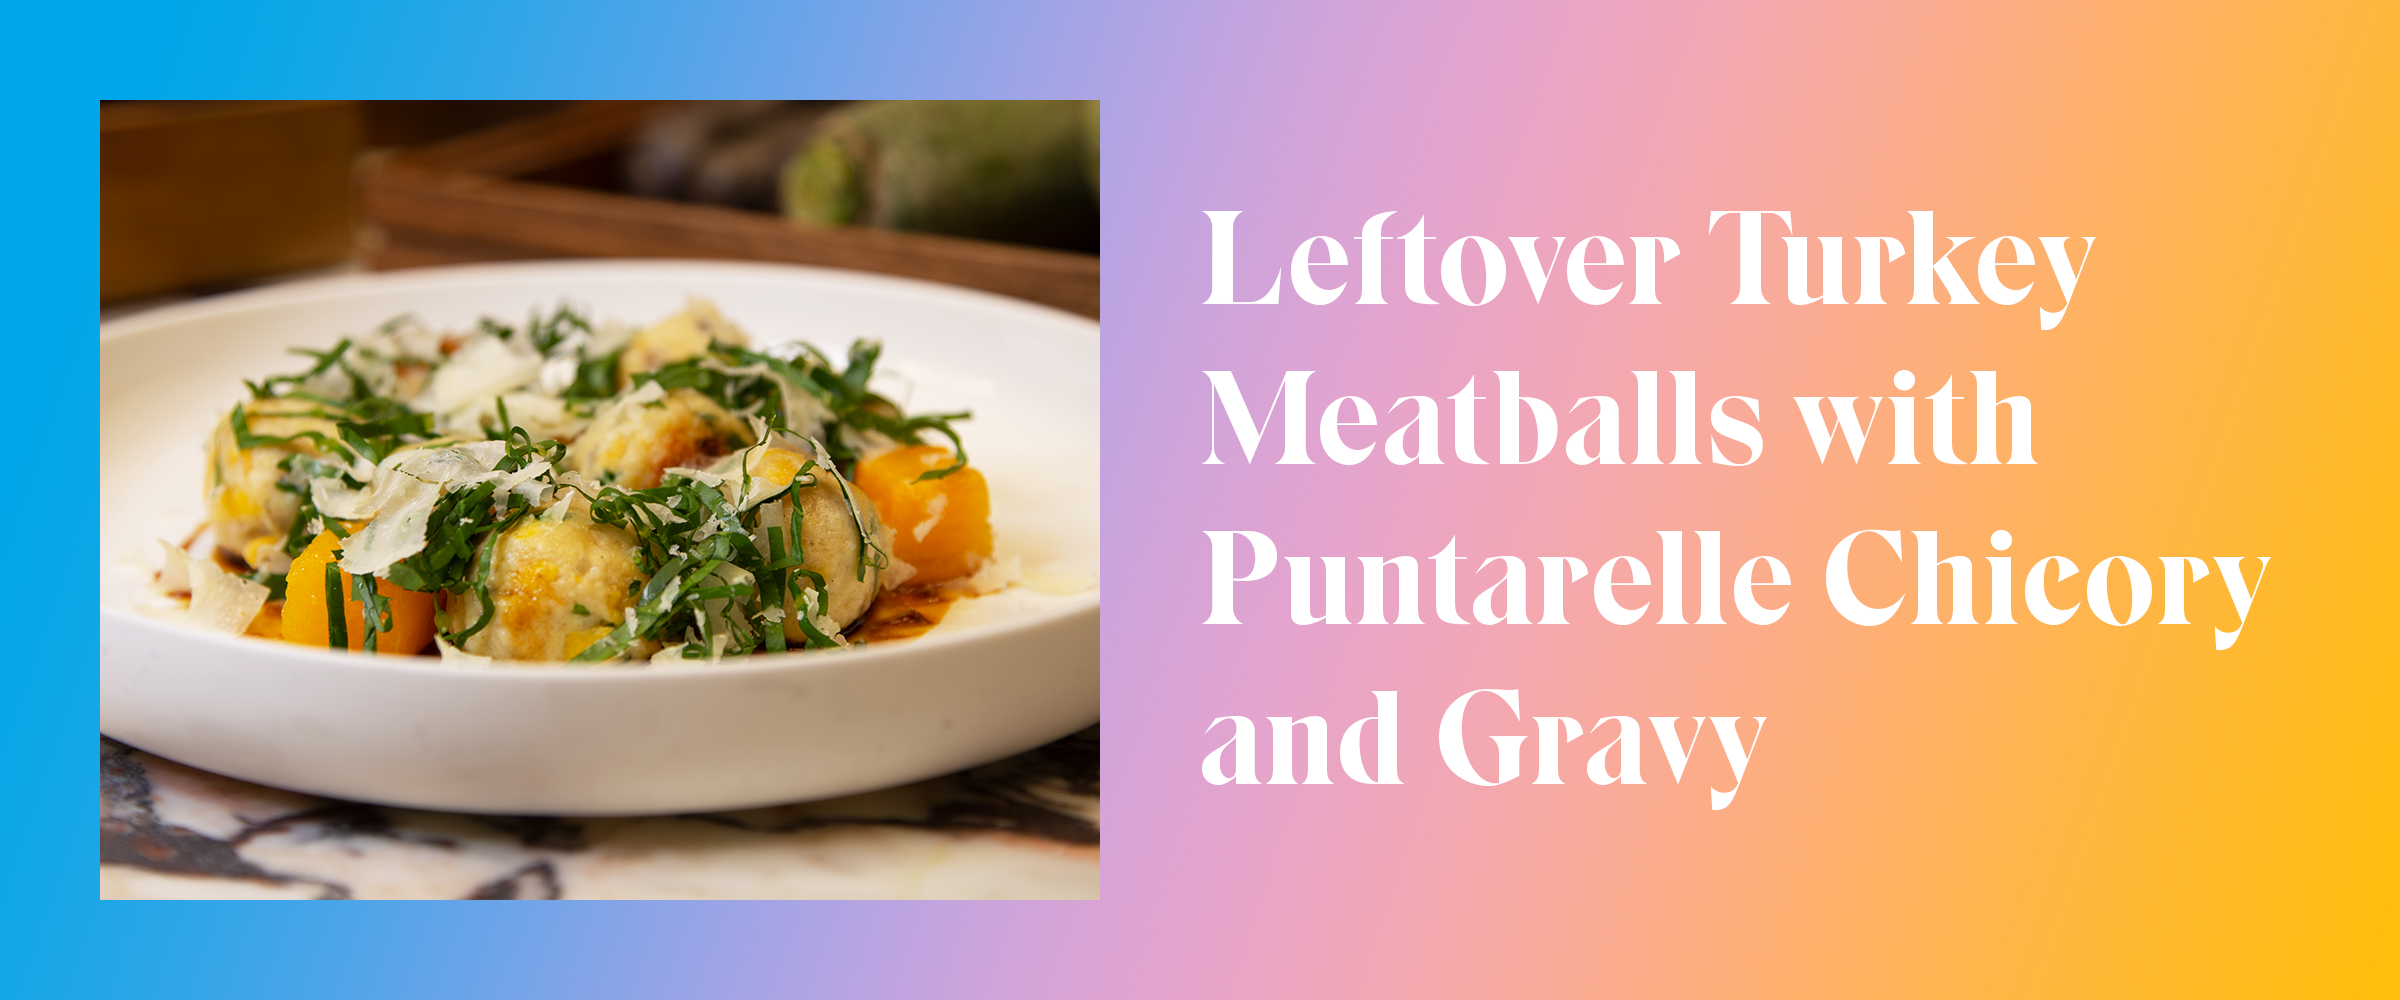 Leftover Turkey Meatballs with Puntarelle Chicory and Gravy